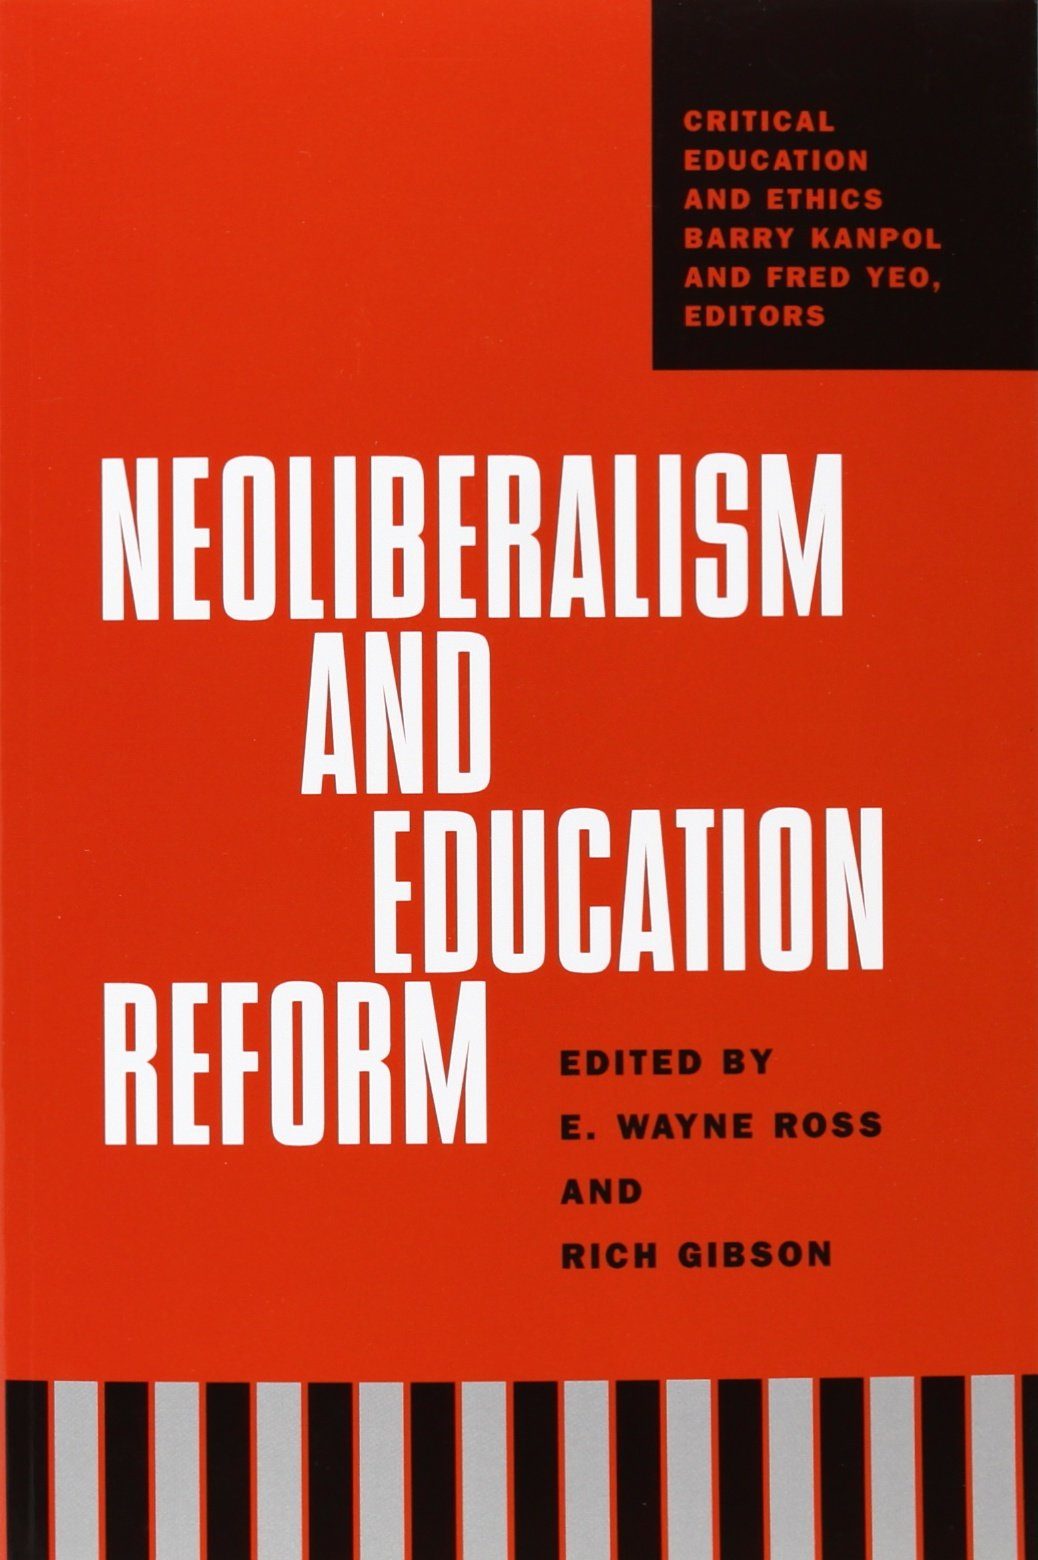 Download Neoliberalism And Education Reform (Critical Education and Ethics) PDF